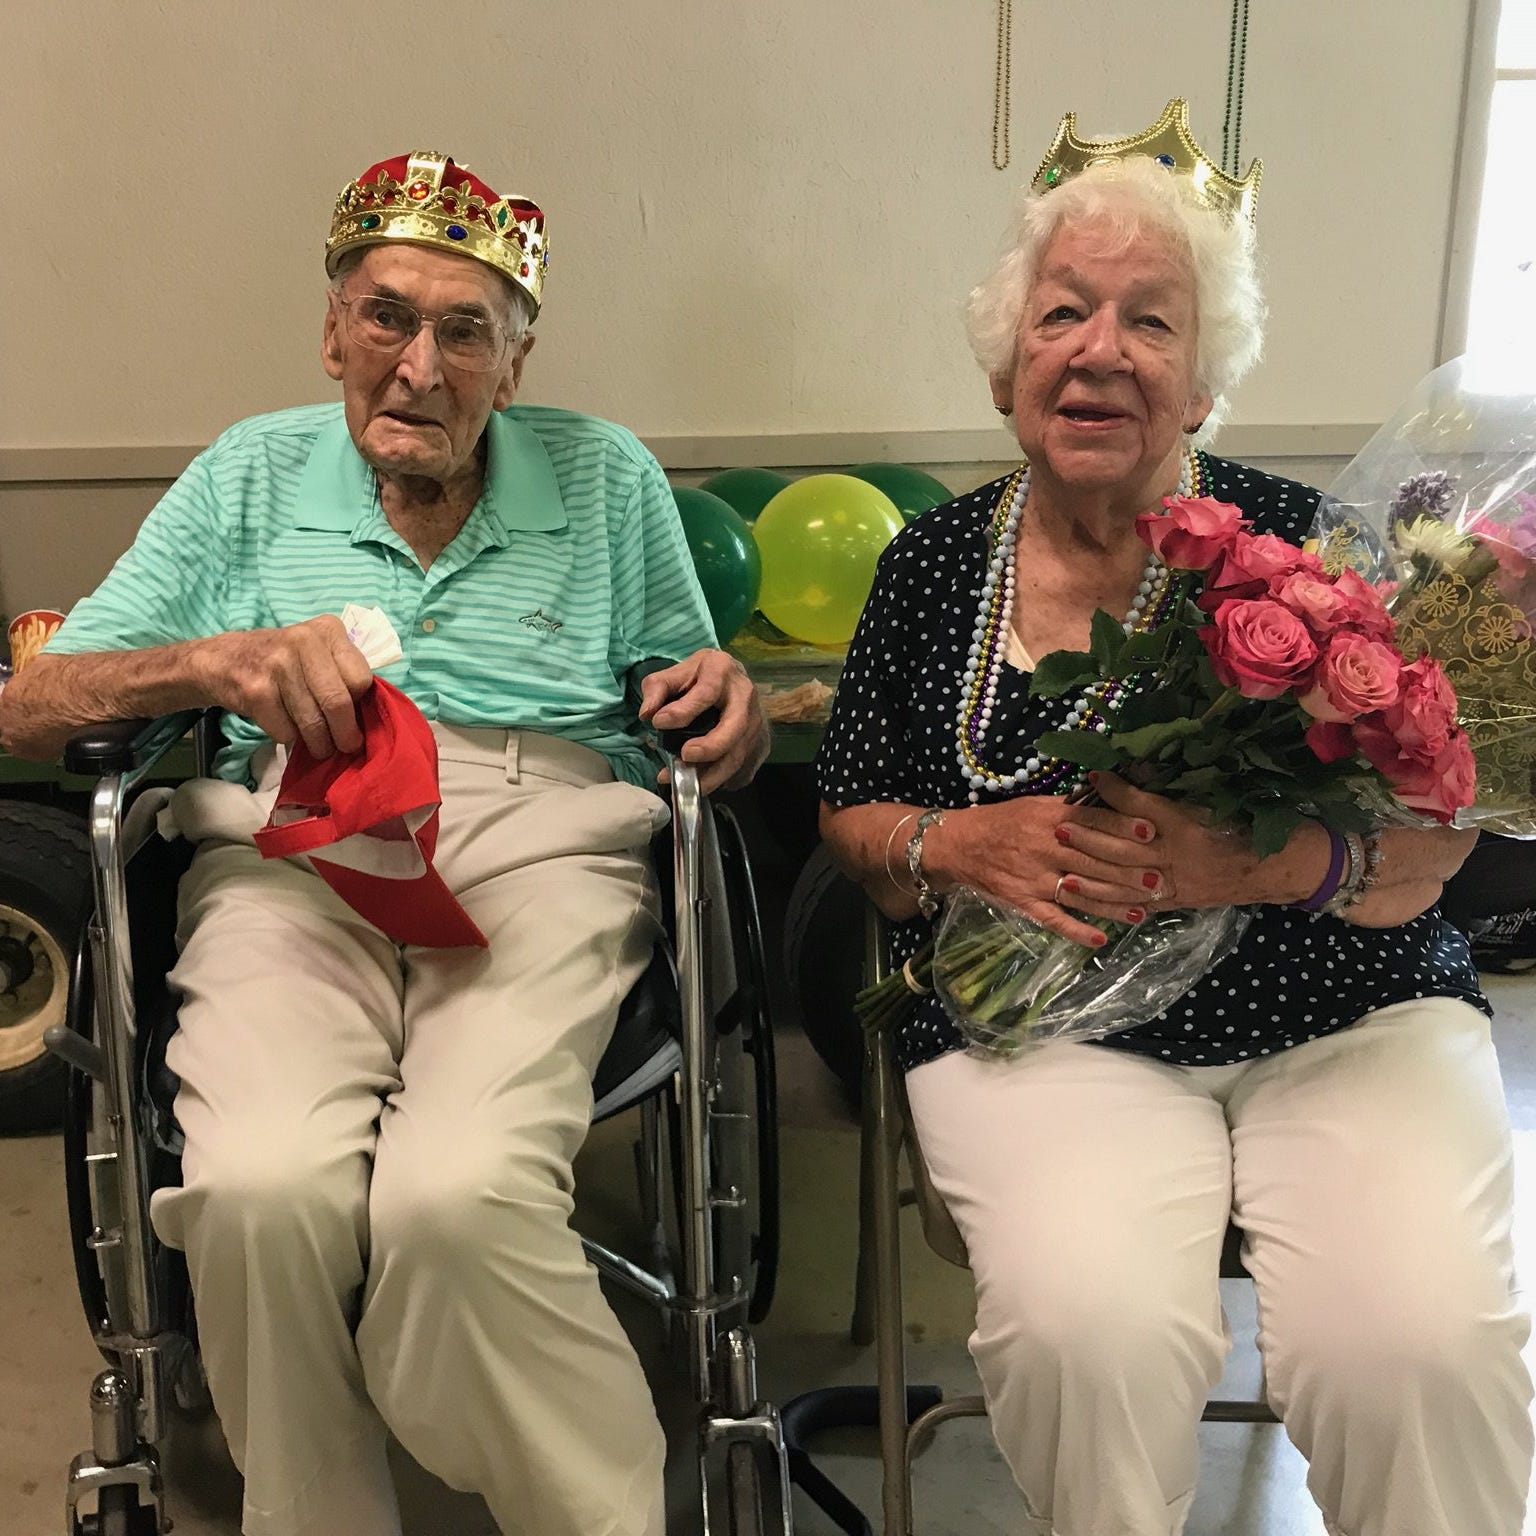 Life Briefs: Richland County Fair ageless beauty king and queen announced